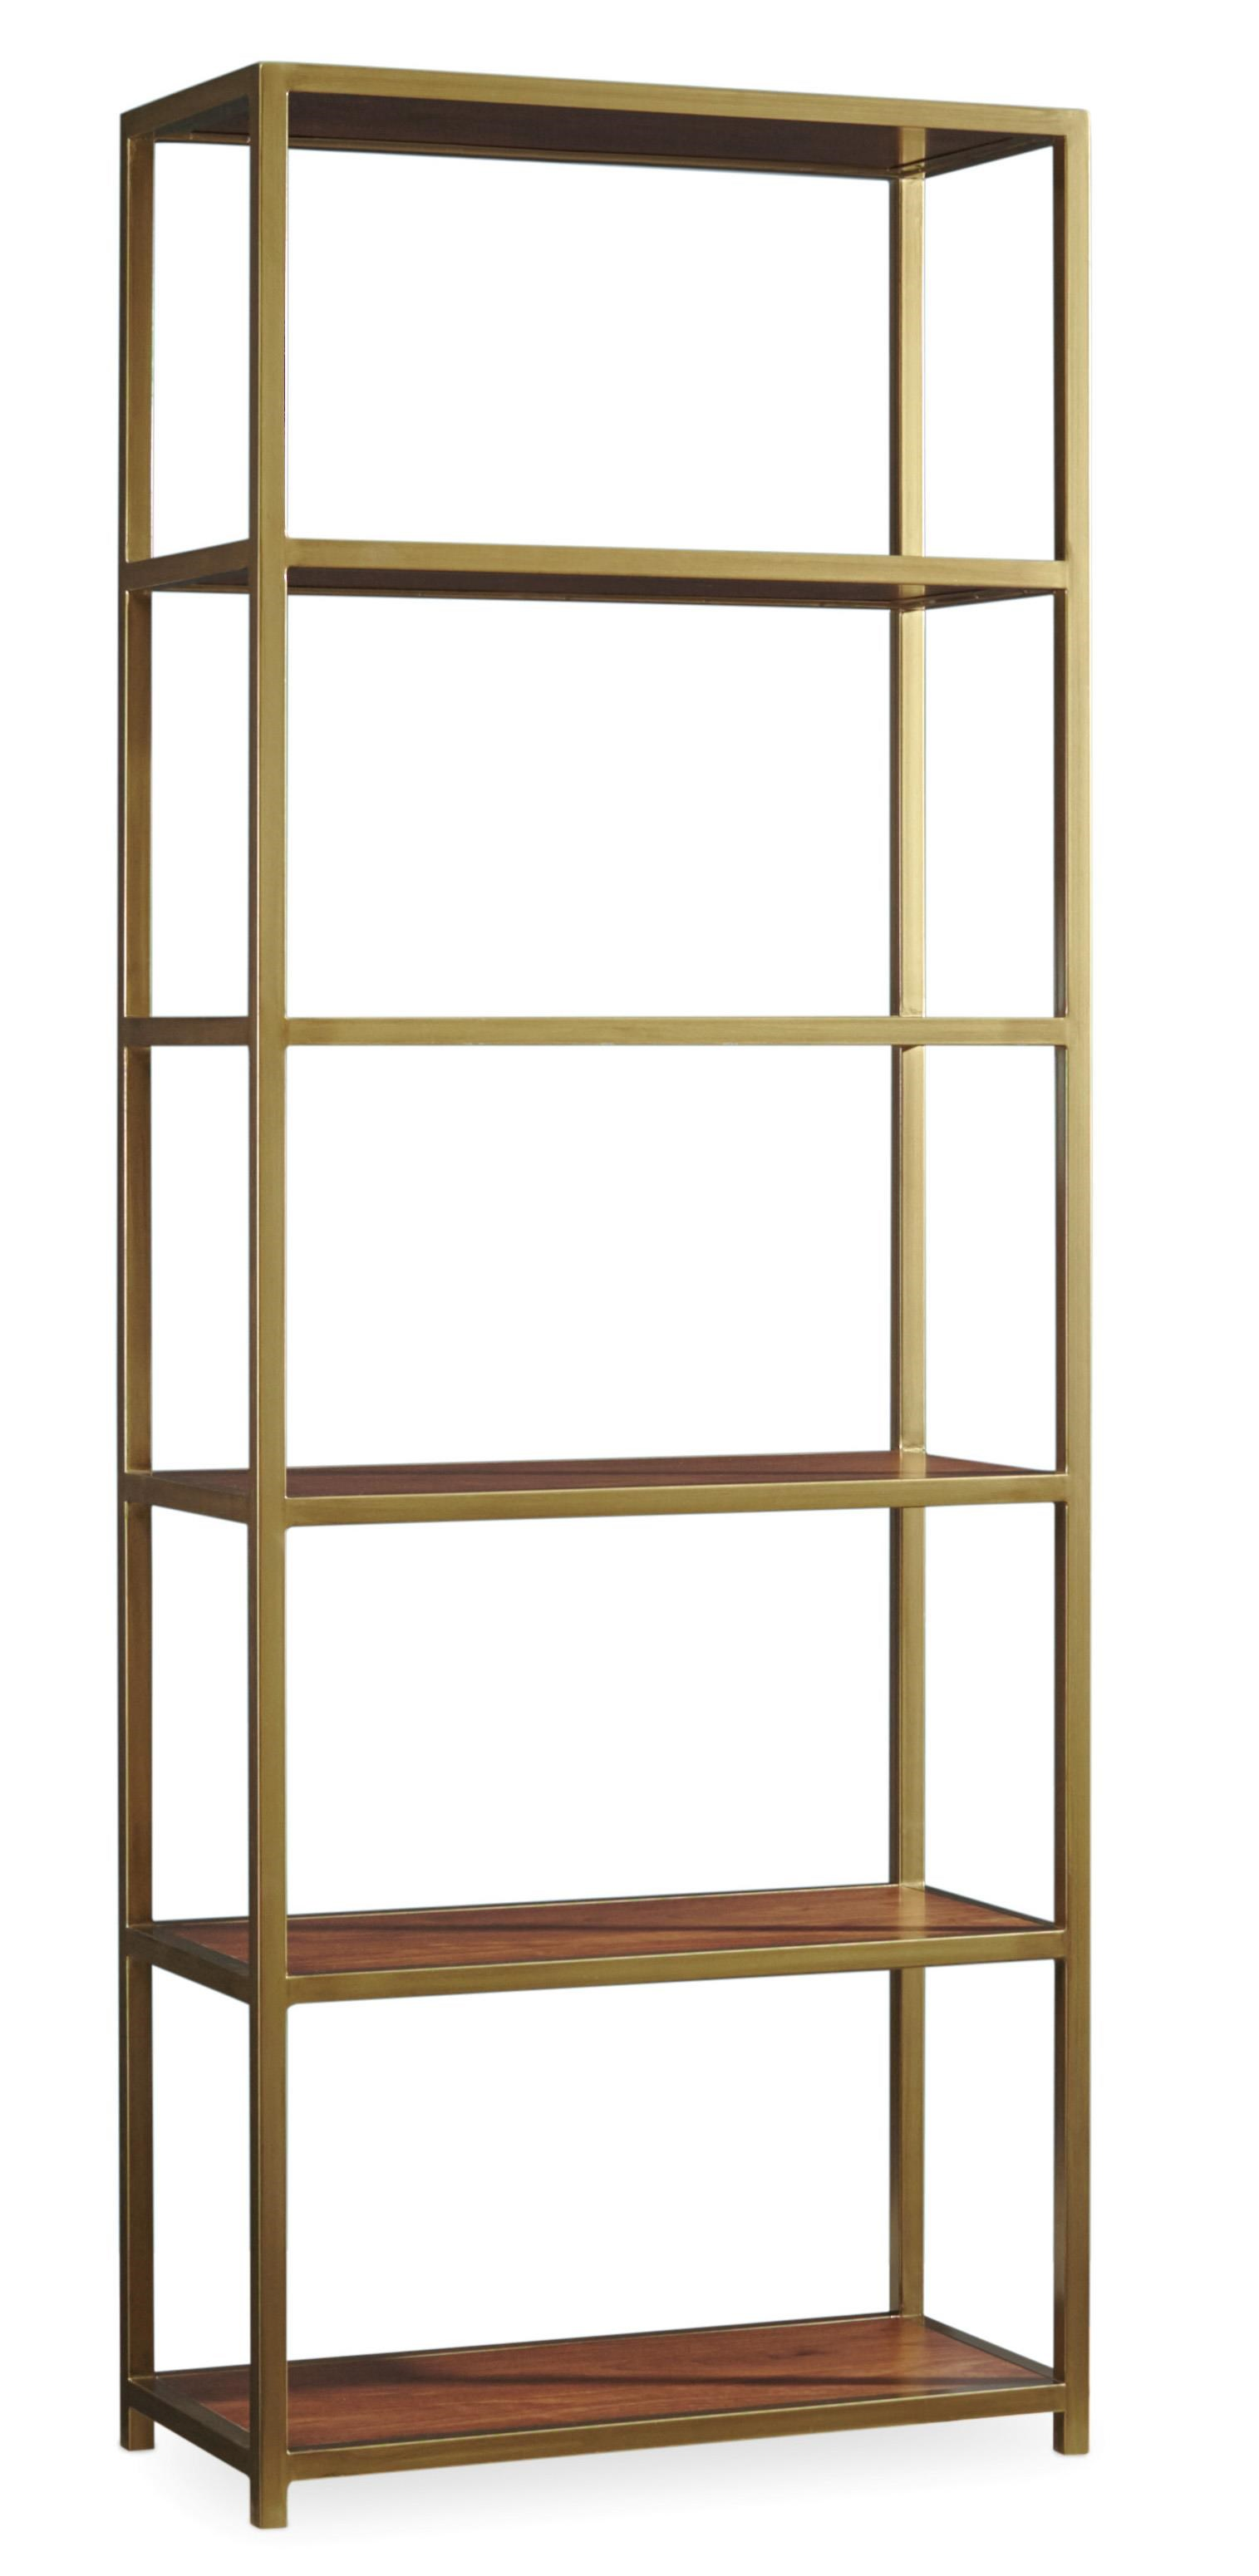 Hooker Furniture Studio 7H 5398 10443 NYPL Tall Metal Bookcase With 5  Shelves | Dunk U0026 Bright Furniture | Open Bookcases